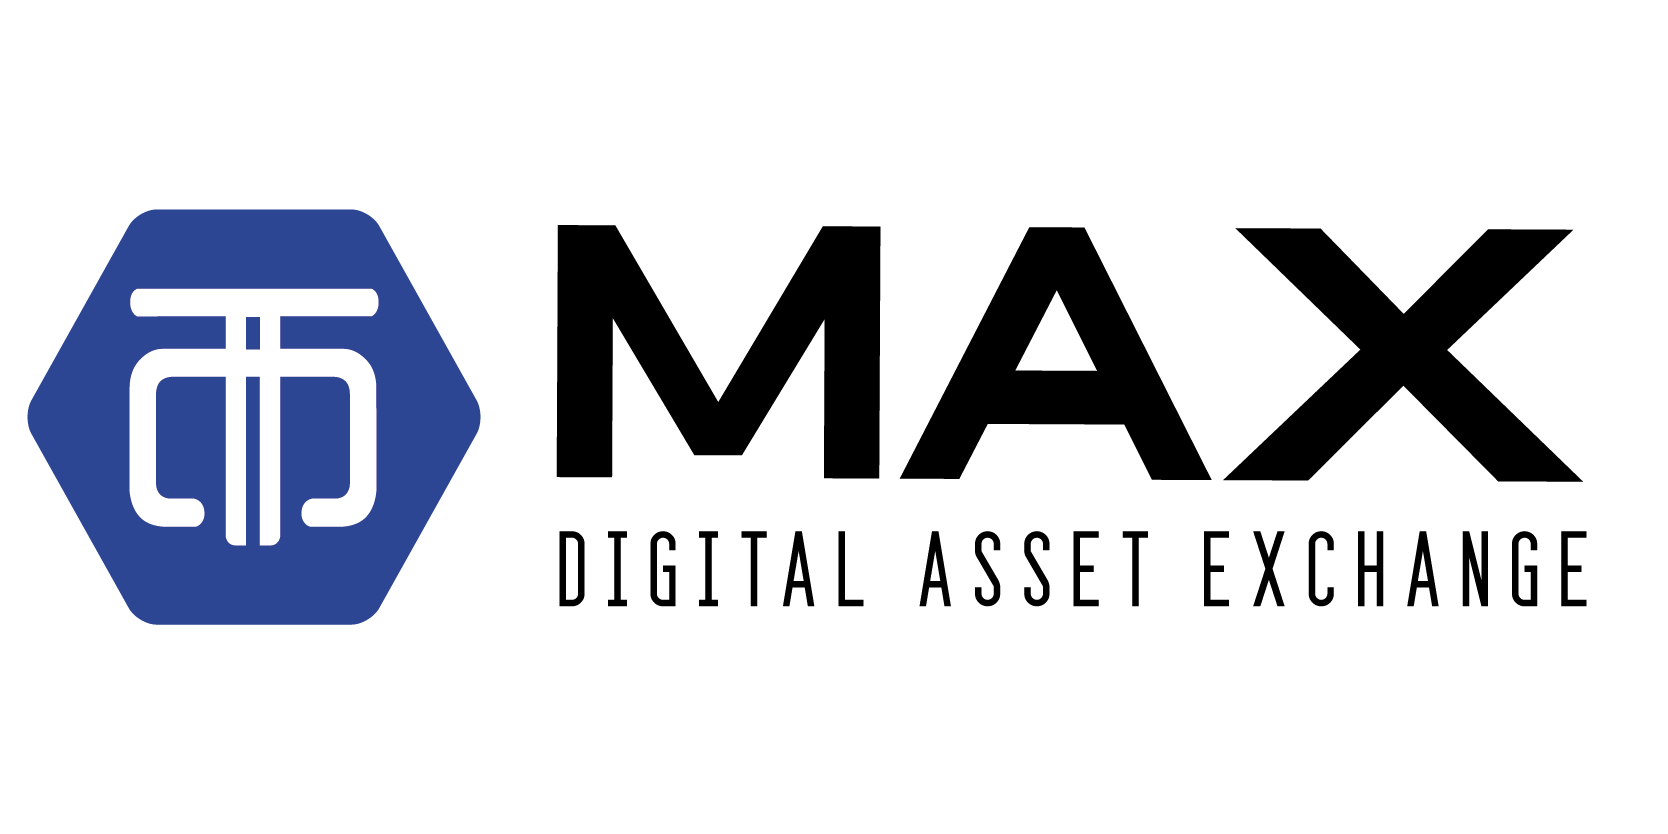 Max-Maicoin-Digital-Asset-Cryptocurrency-Exchance-Logo-Transparent